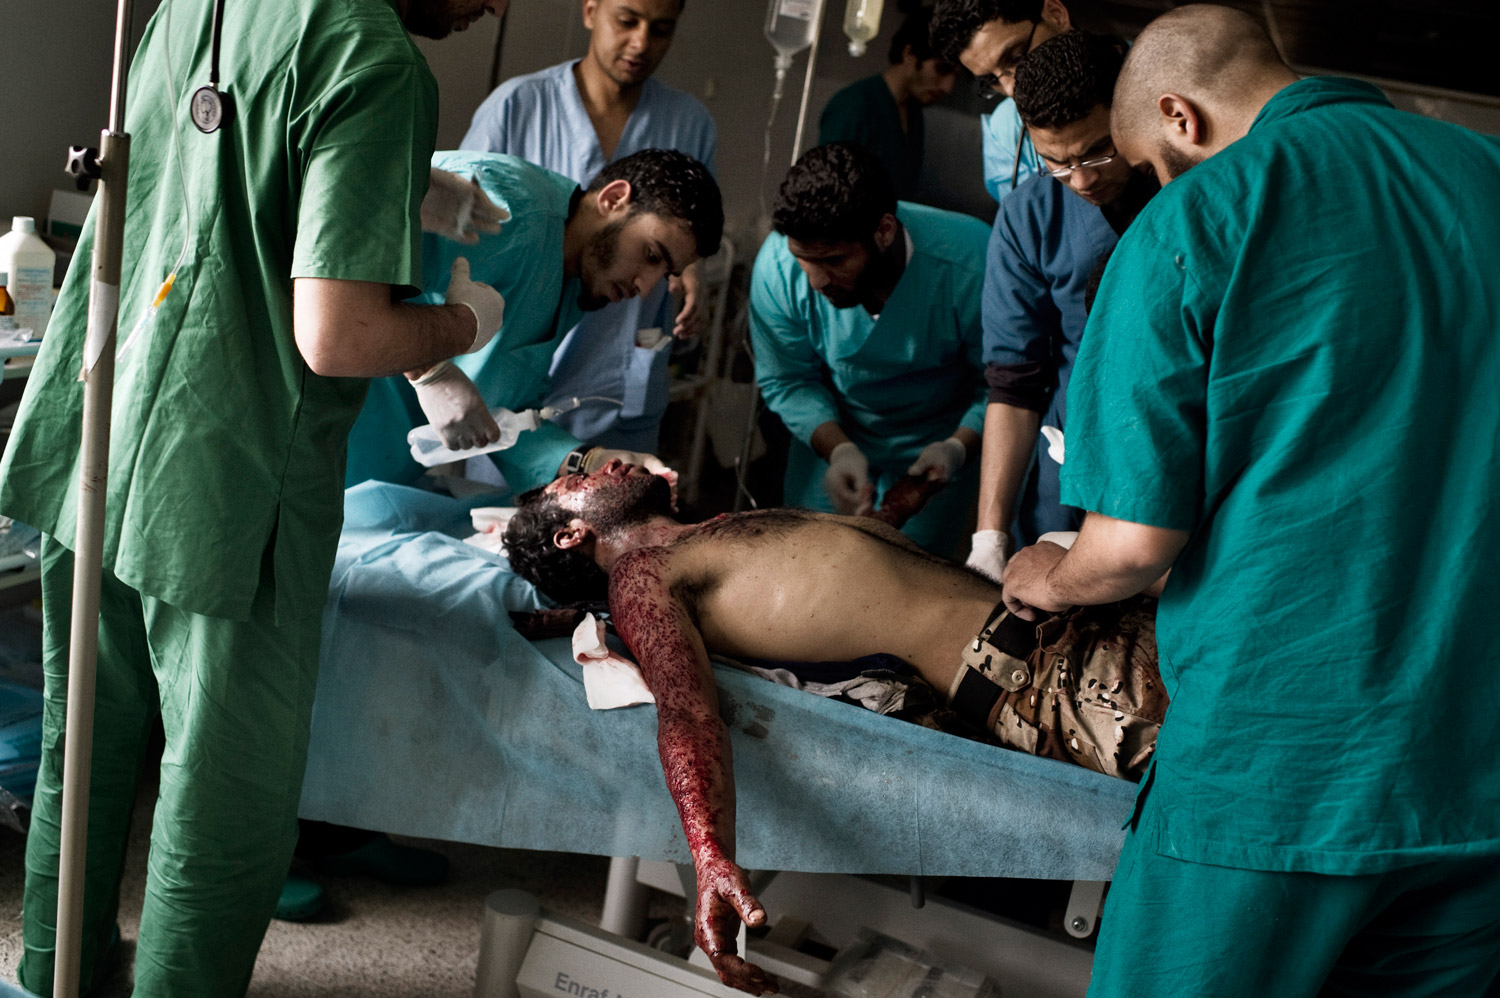 A wounded rebel is treated at the hospital in Ras Lanuf, March 29, 2011.